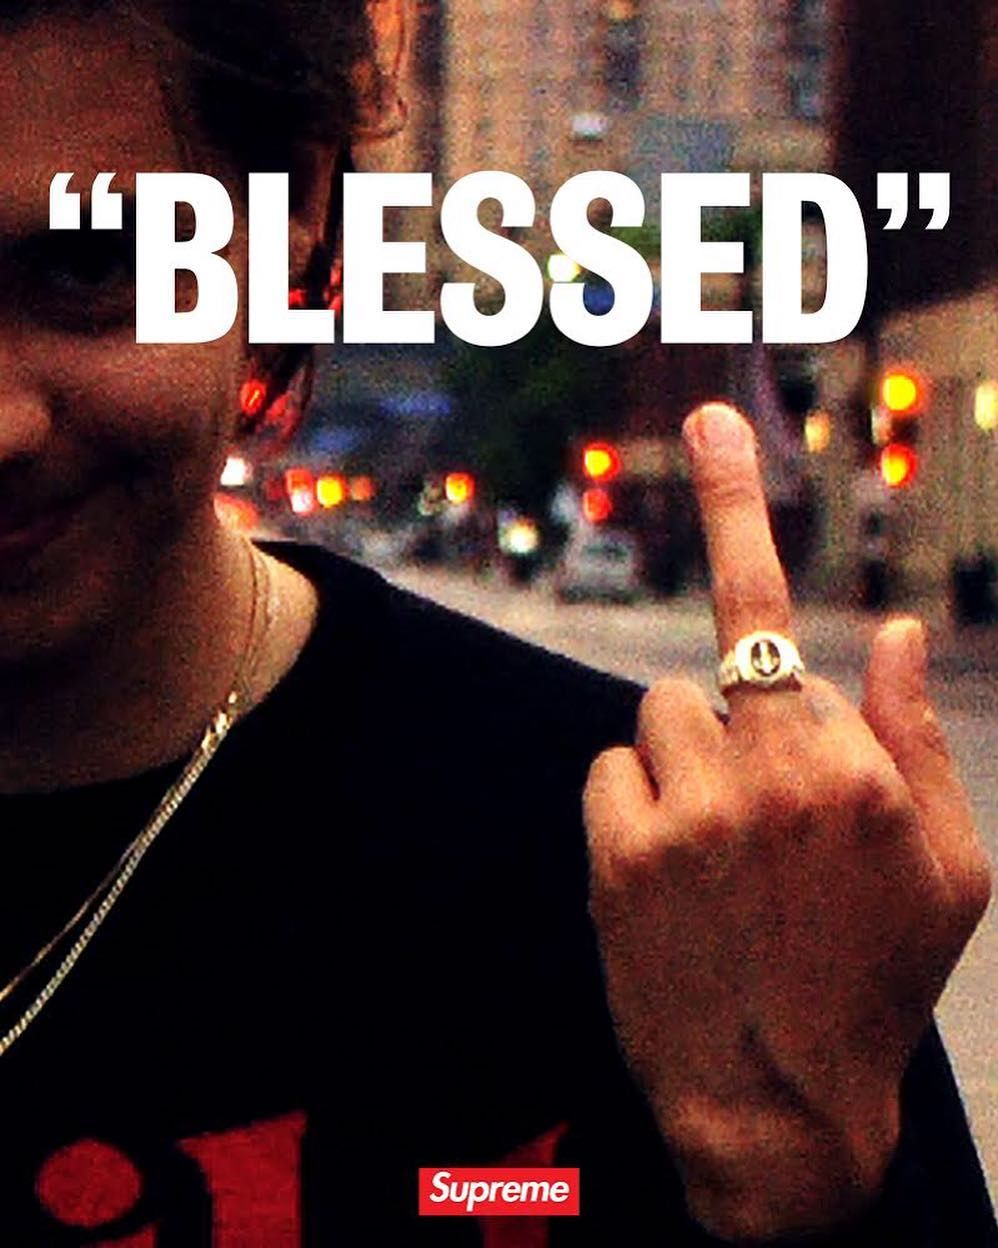 """9465021d3890 Supreme (@supremenewyork) """"BLESSED"""" a full-length video by William Strobeck  for Supreme. Coming soon."""""""